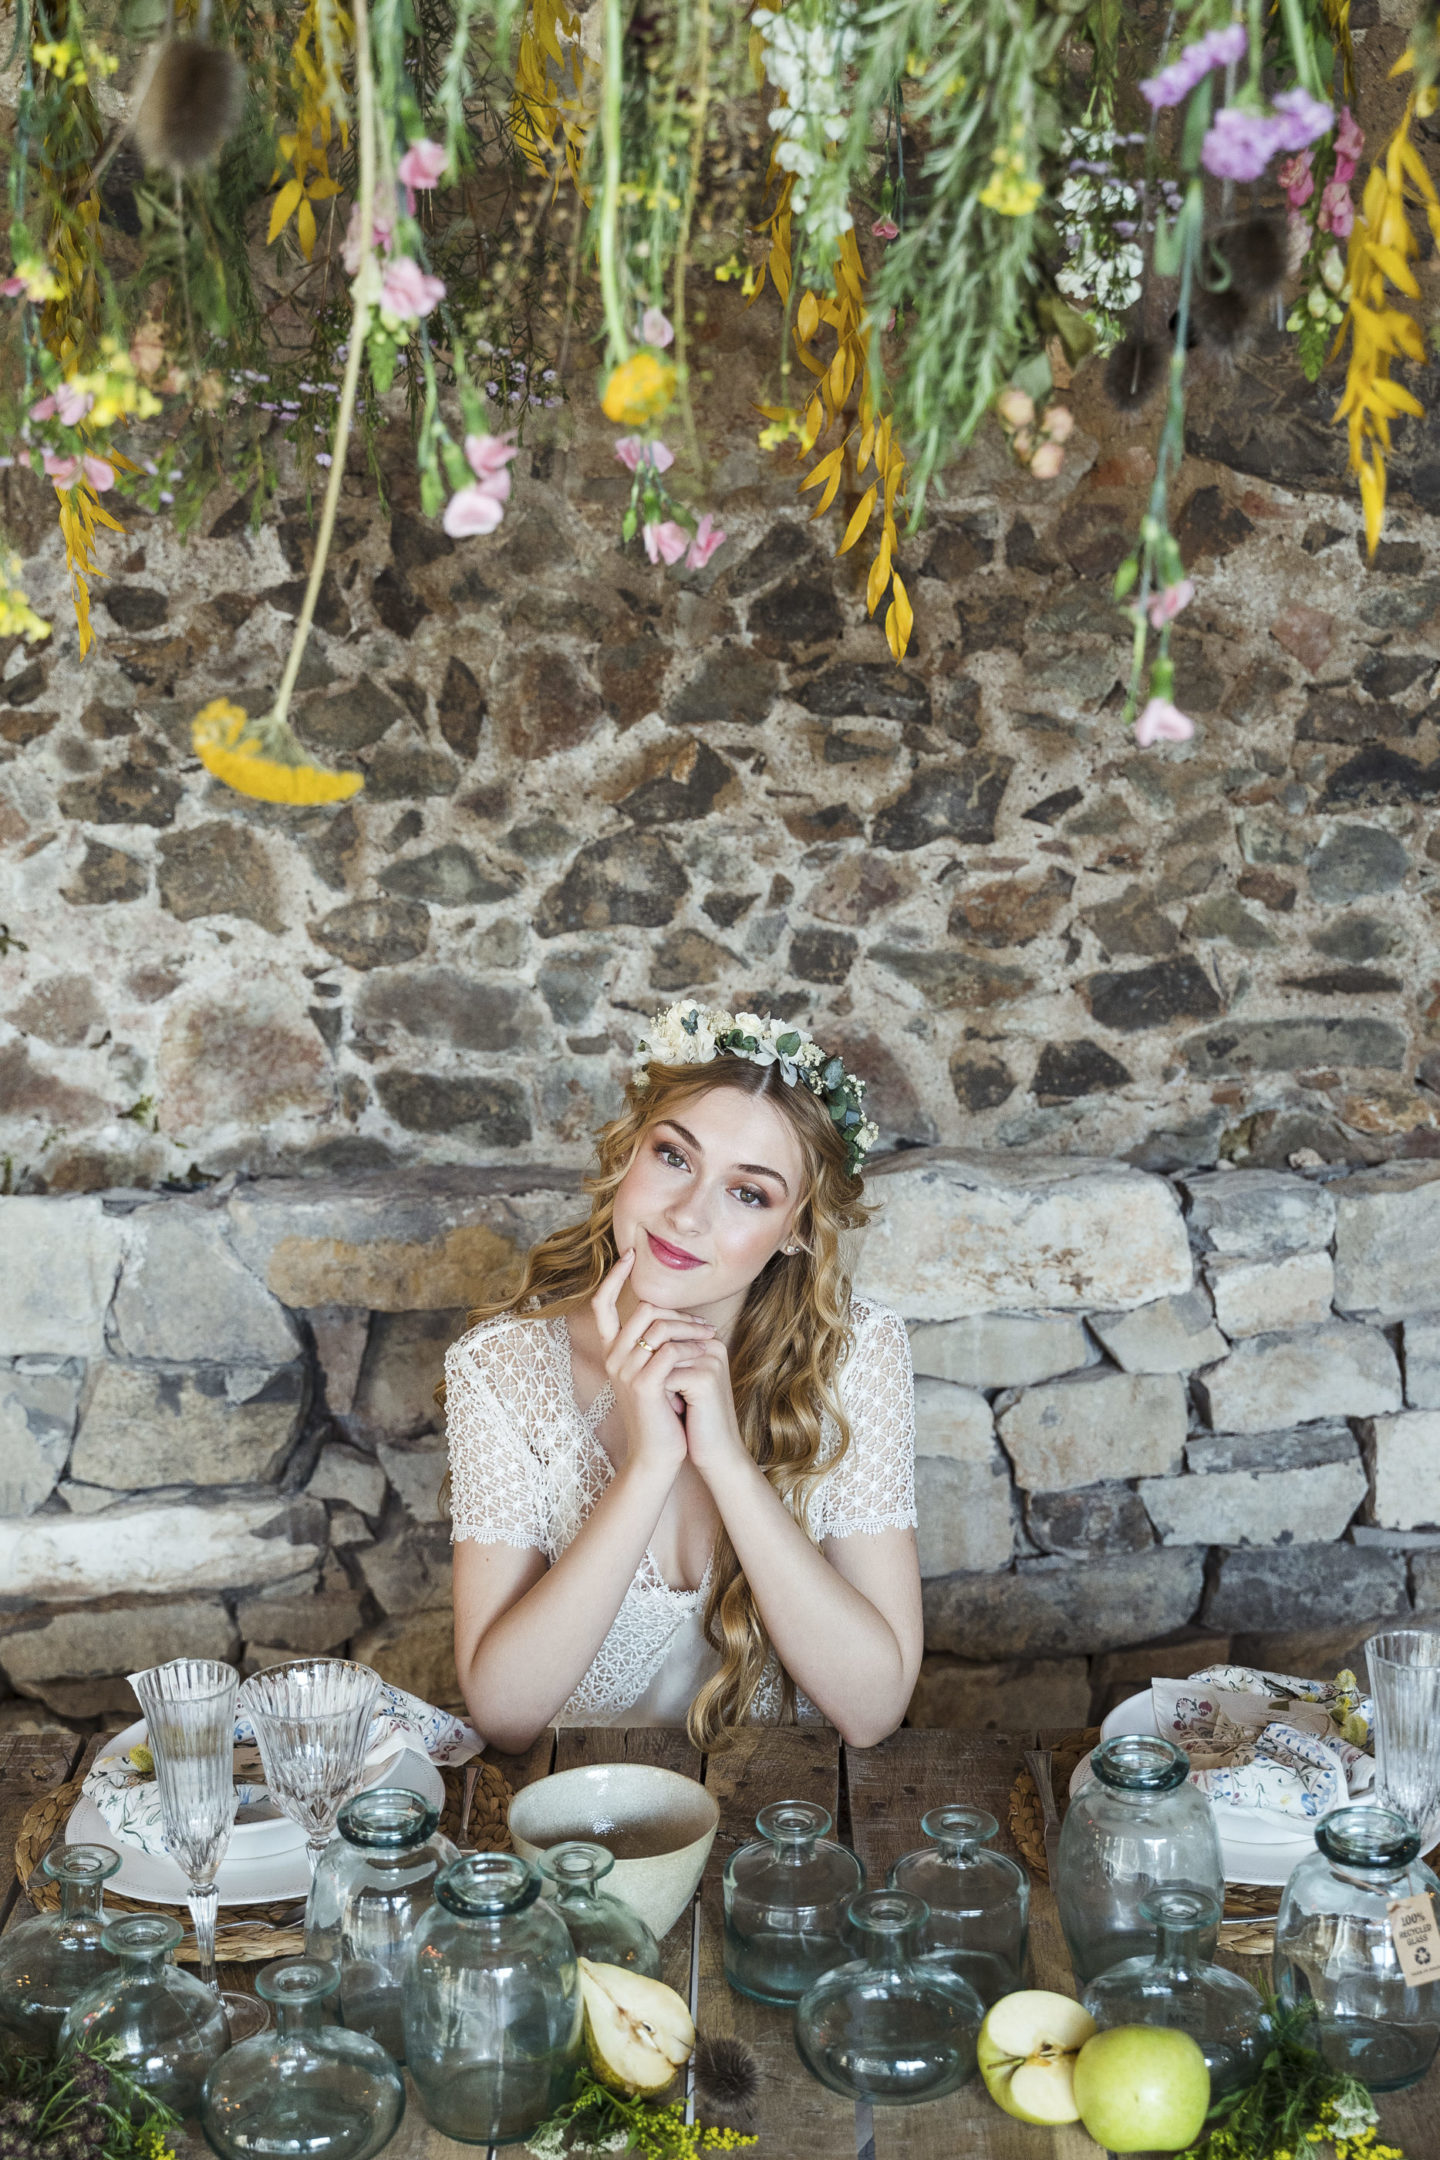 Ethical Wedding Inspiration With Sandra Jorda Dress In Barcelona, Spain